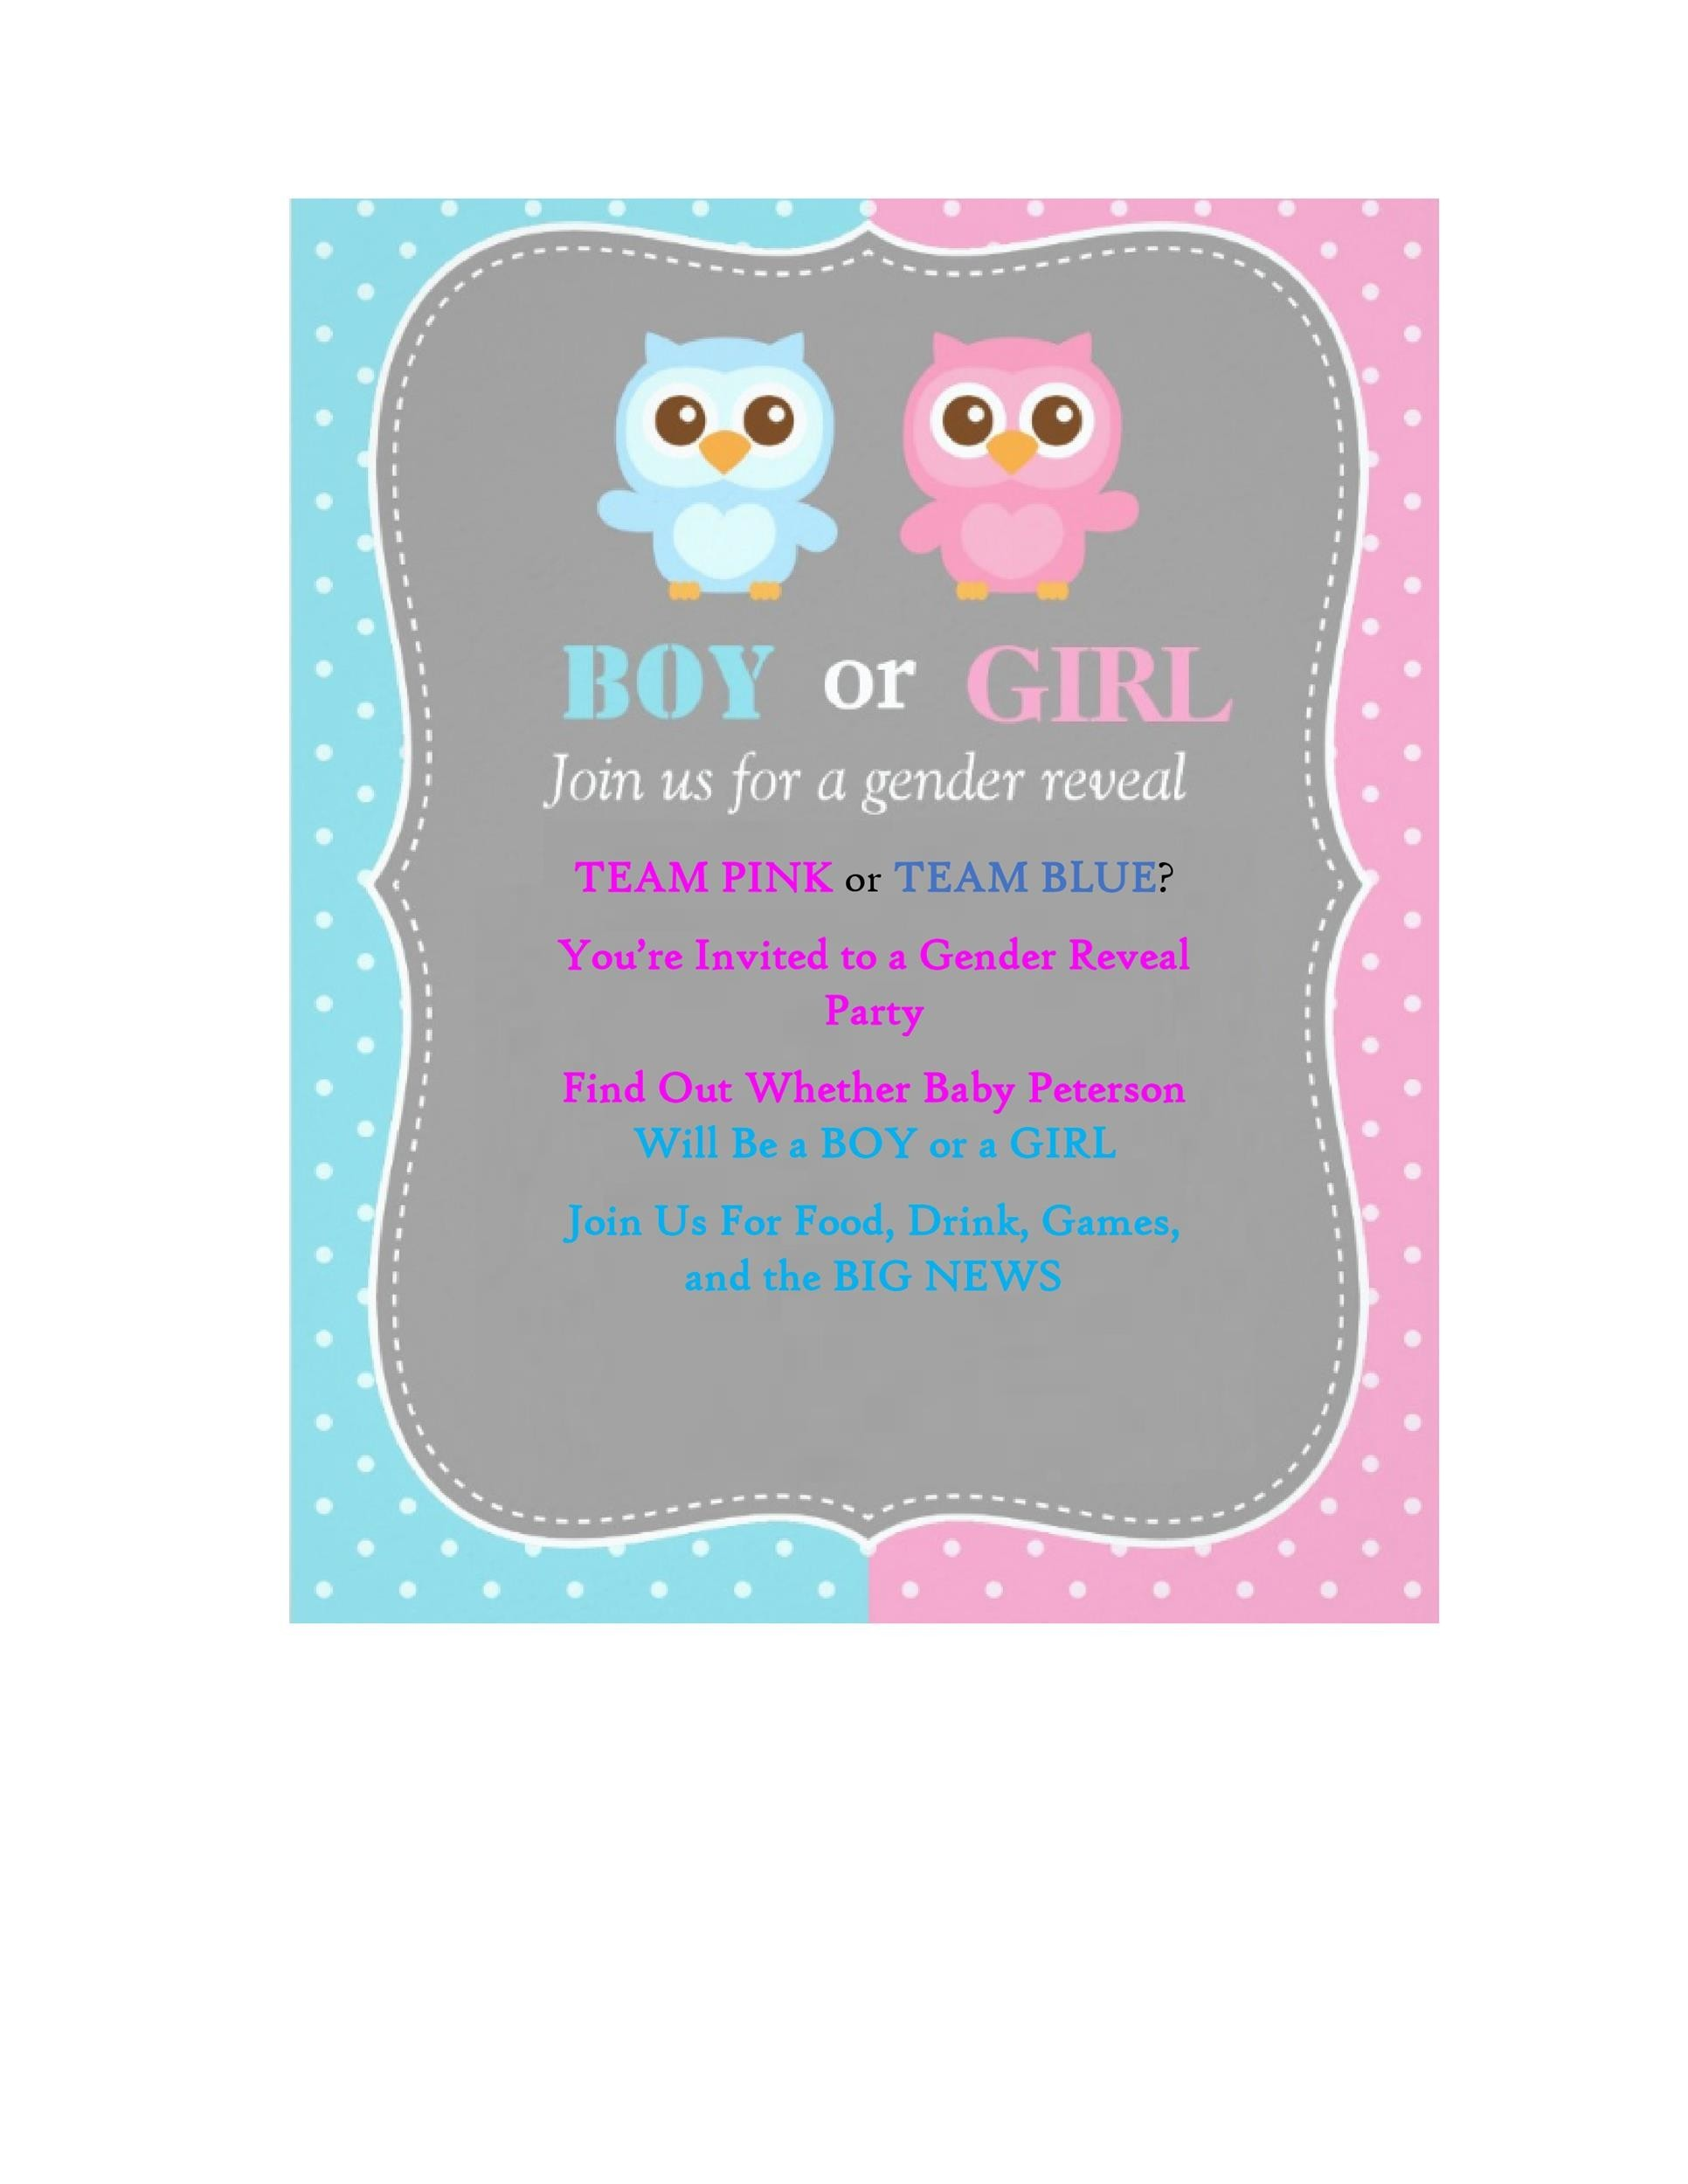 photo regarding Printable Gender Reveal Invitations called 17 Free of charge Gender Demonstrate Invitation Templates ᐅ Template Lab